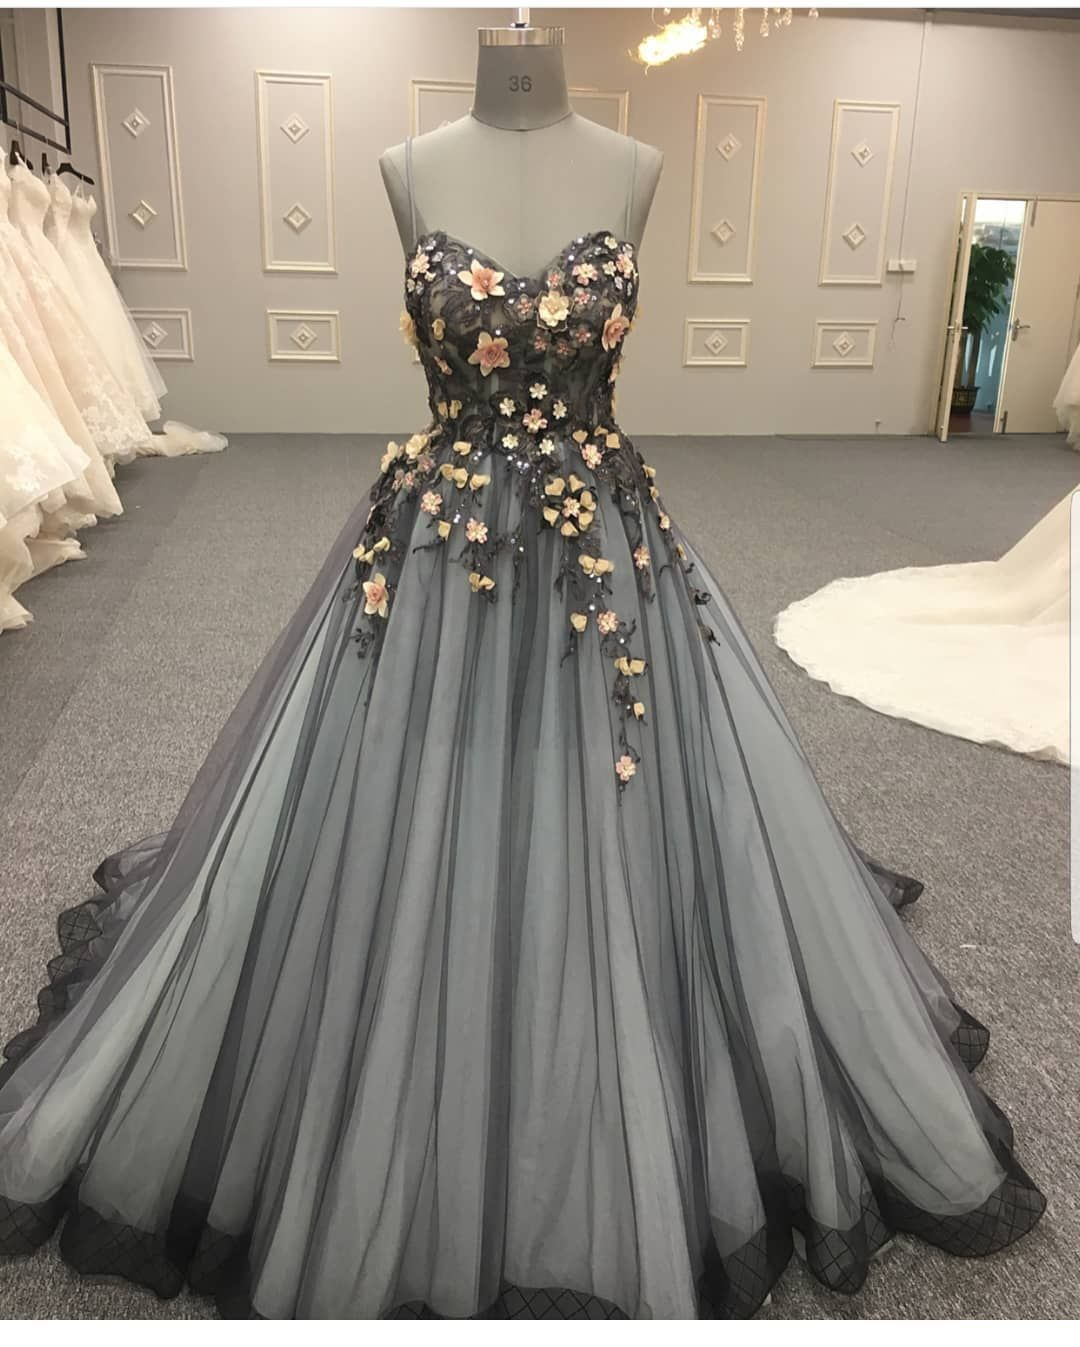 Custom evening dresses couture formal ball gowns colored wedding